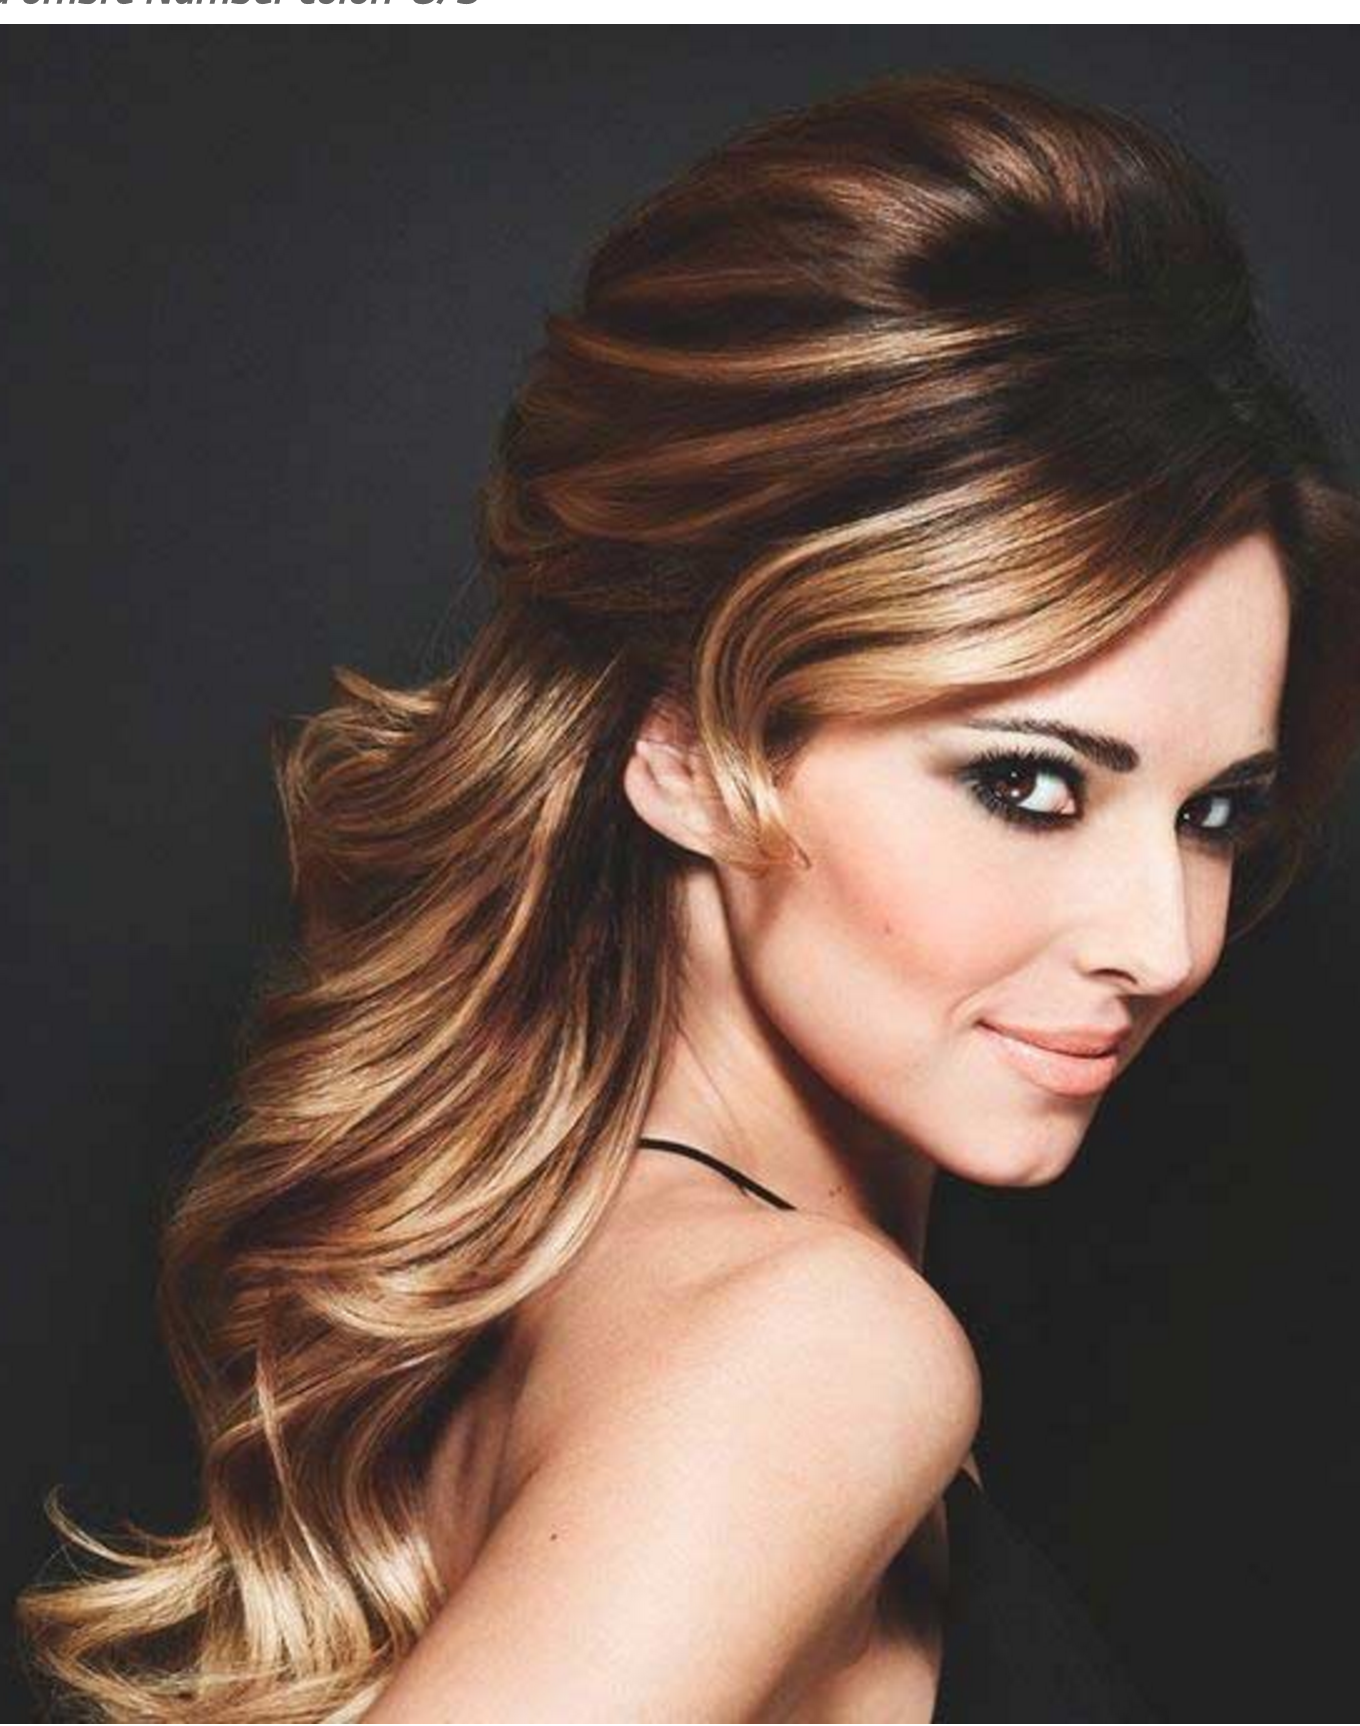 cheryl cole hairstyles - event hairstyles, wedding